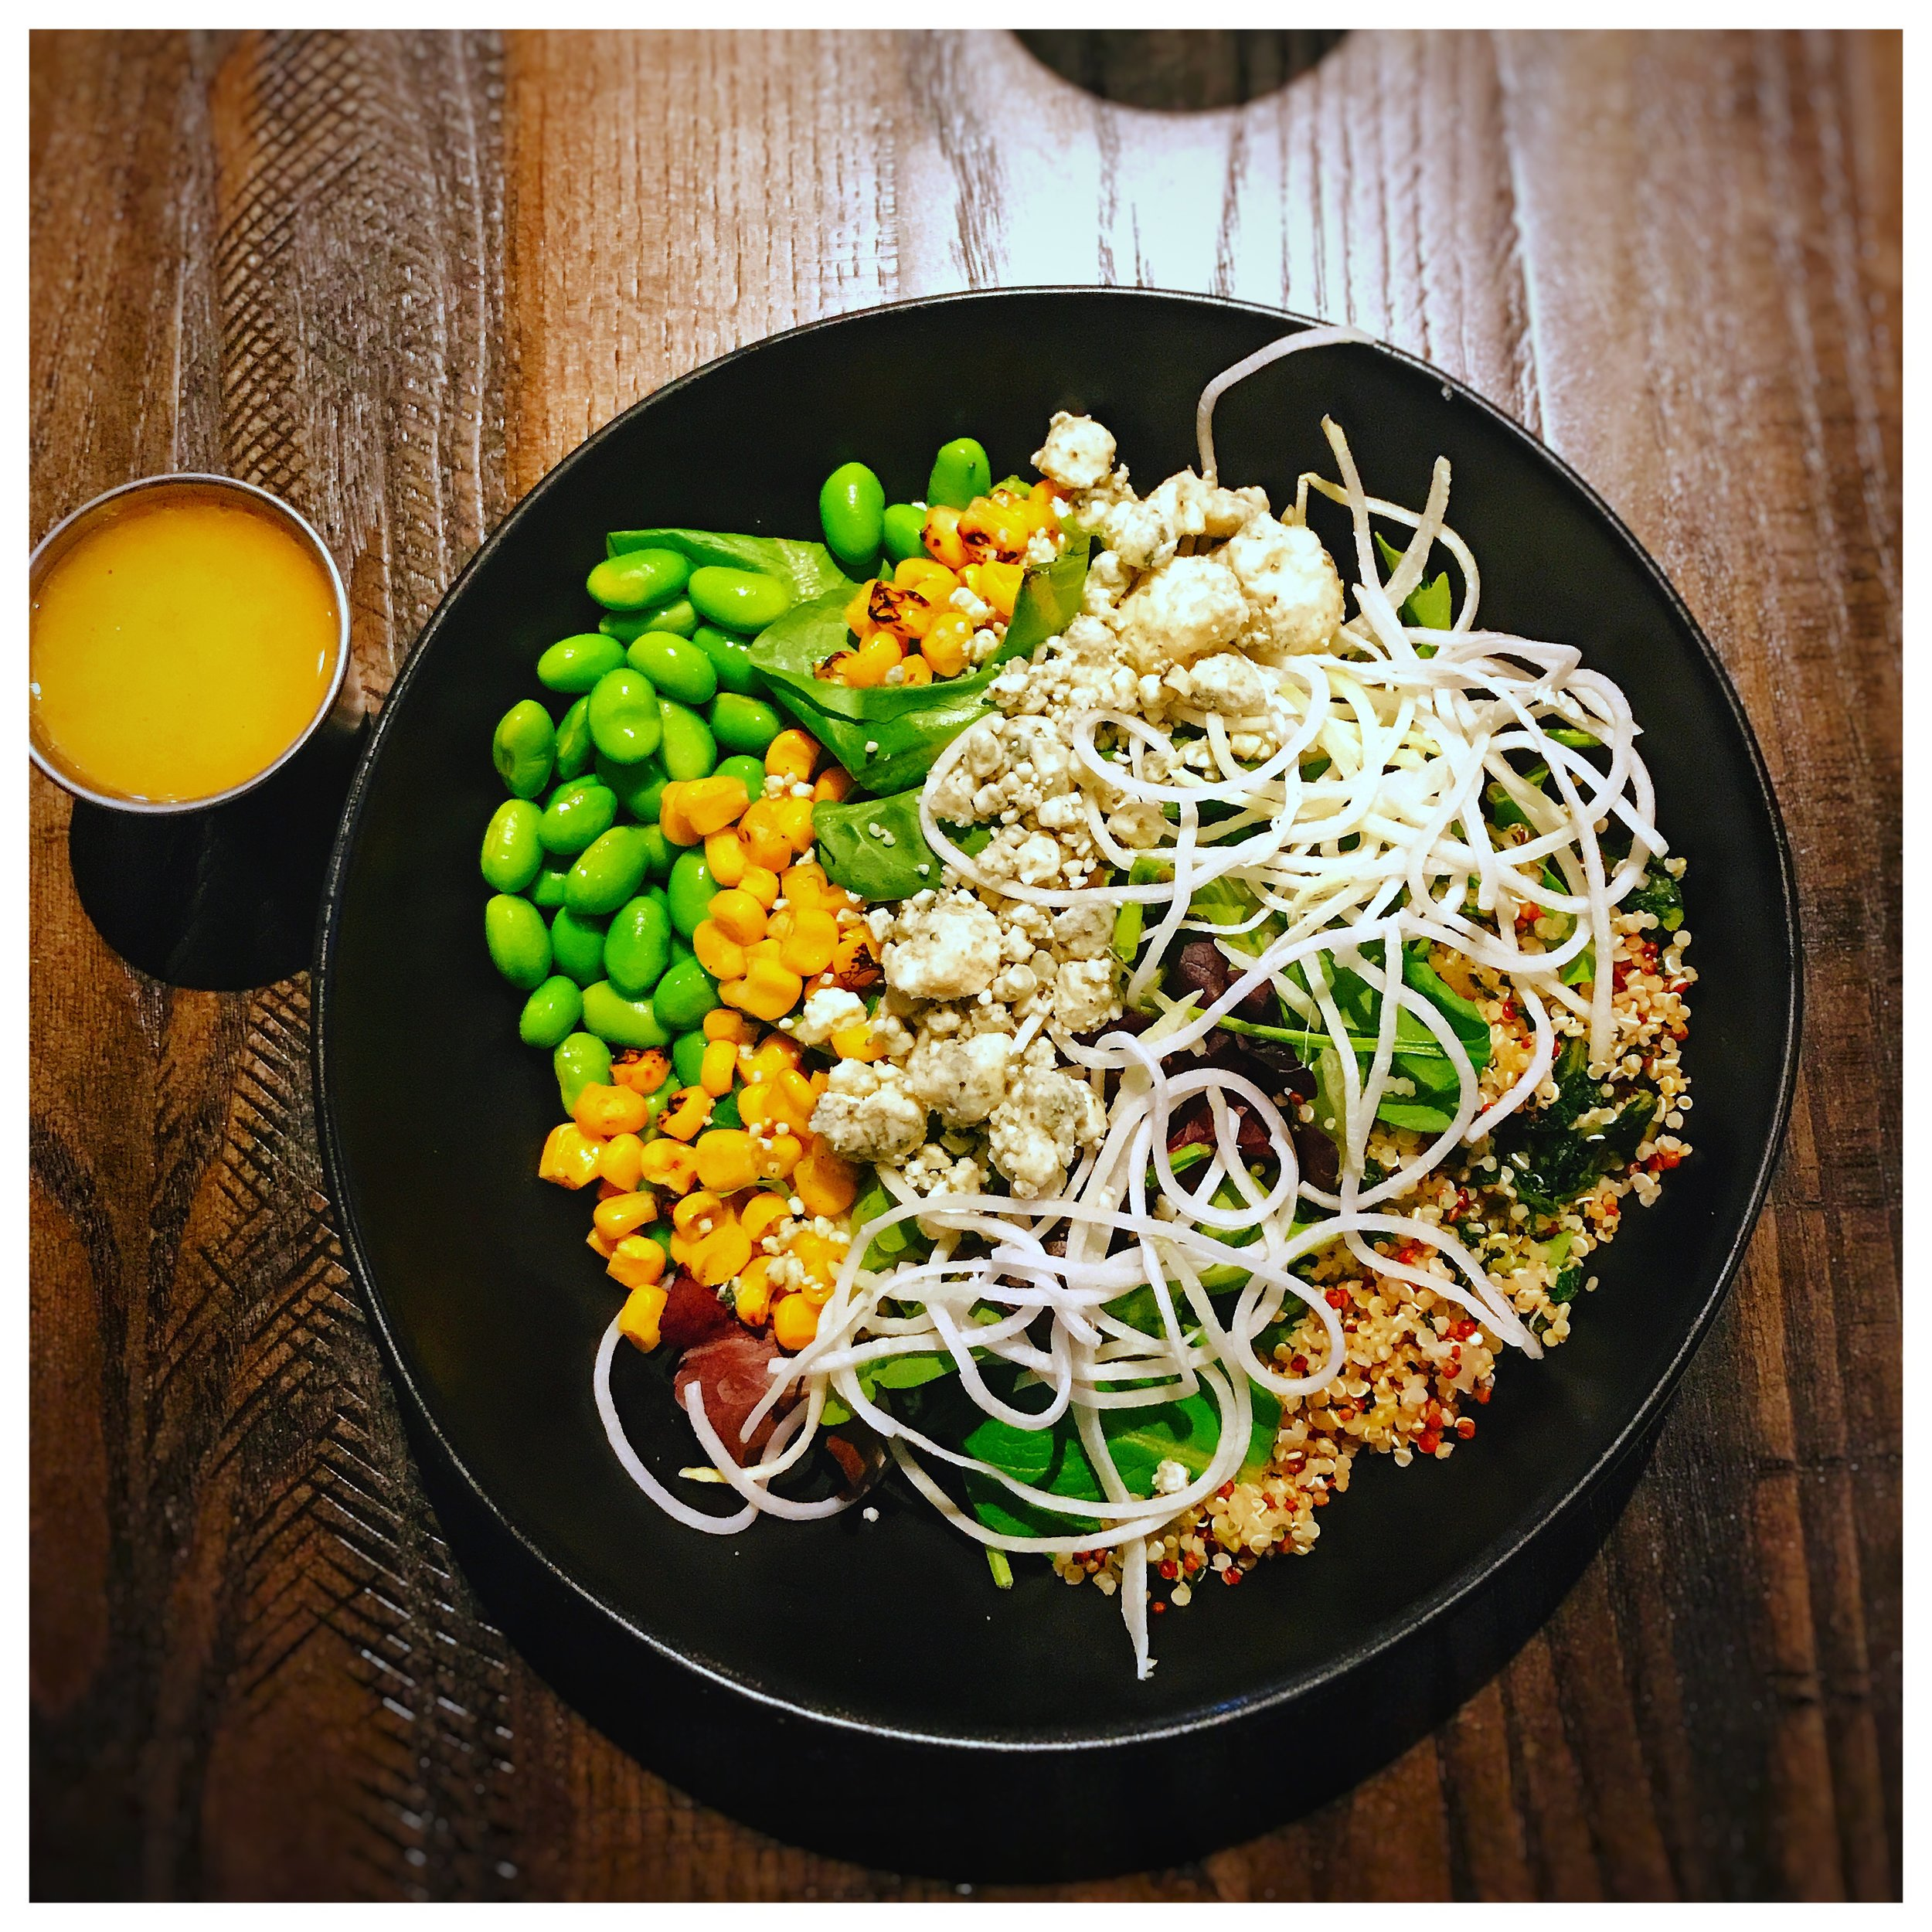 Build Your Own Salad - Duckworth's let us first try their new salad option. Customers can customize their salad now, but for us they went ahead and prepared a delicious combination of quinoa, kohlrabi, edamame, bleu cheese crumbles, corn, and hearts & hearts served with a champagne vinaigrette. The presentation was beautiful and very colorful. All of the ingredients tasted fresh and it was a good way to start out the meal. The vinaigrette also pared really well with this salad and was balanced. Customers can definitely look forward to the new build your own salad options.